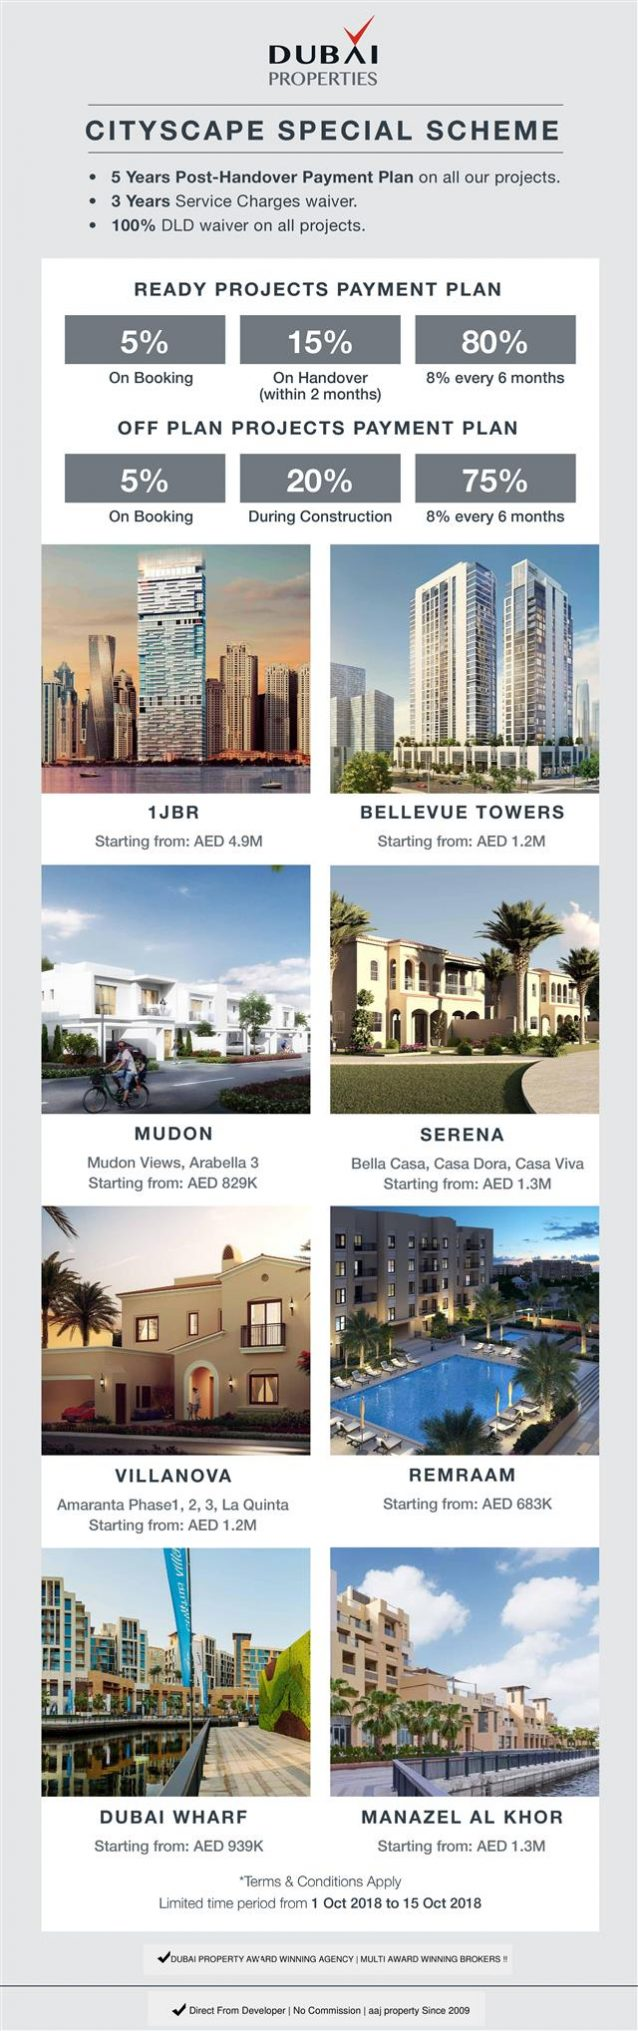 Dubai Properties Special Offer Cityscape